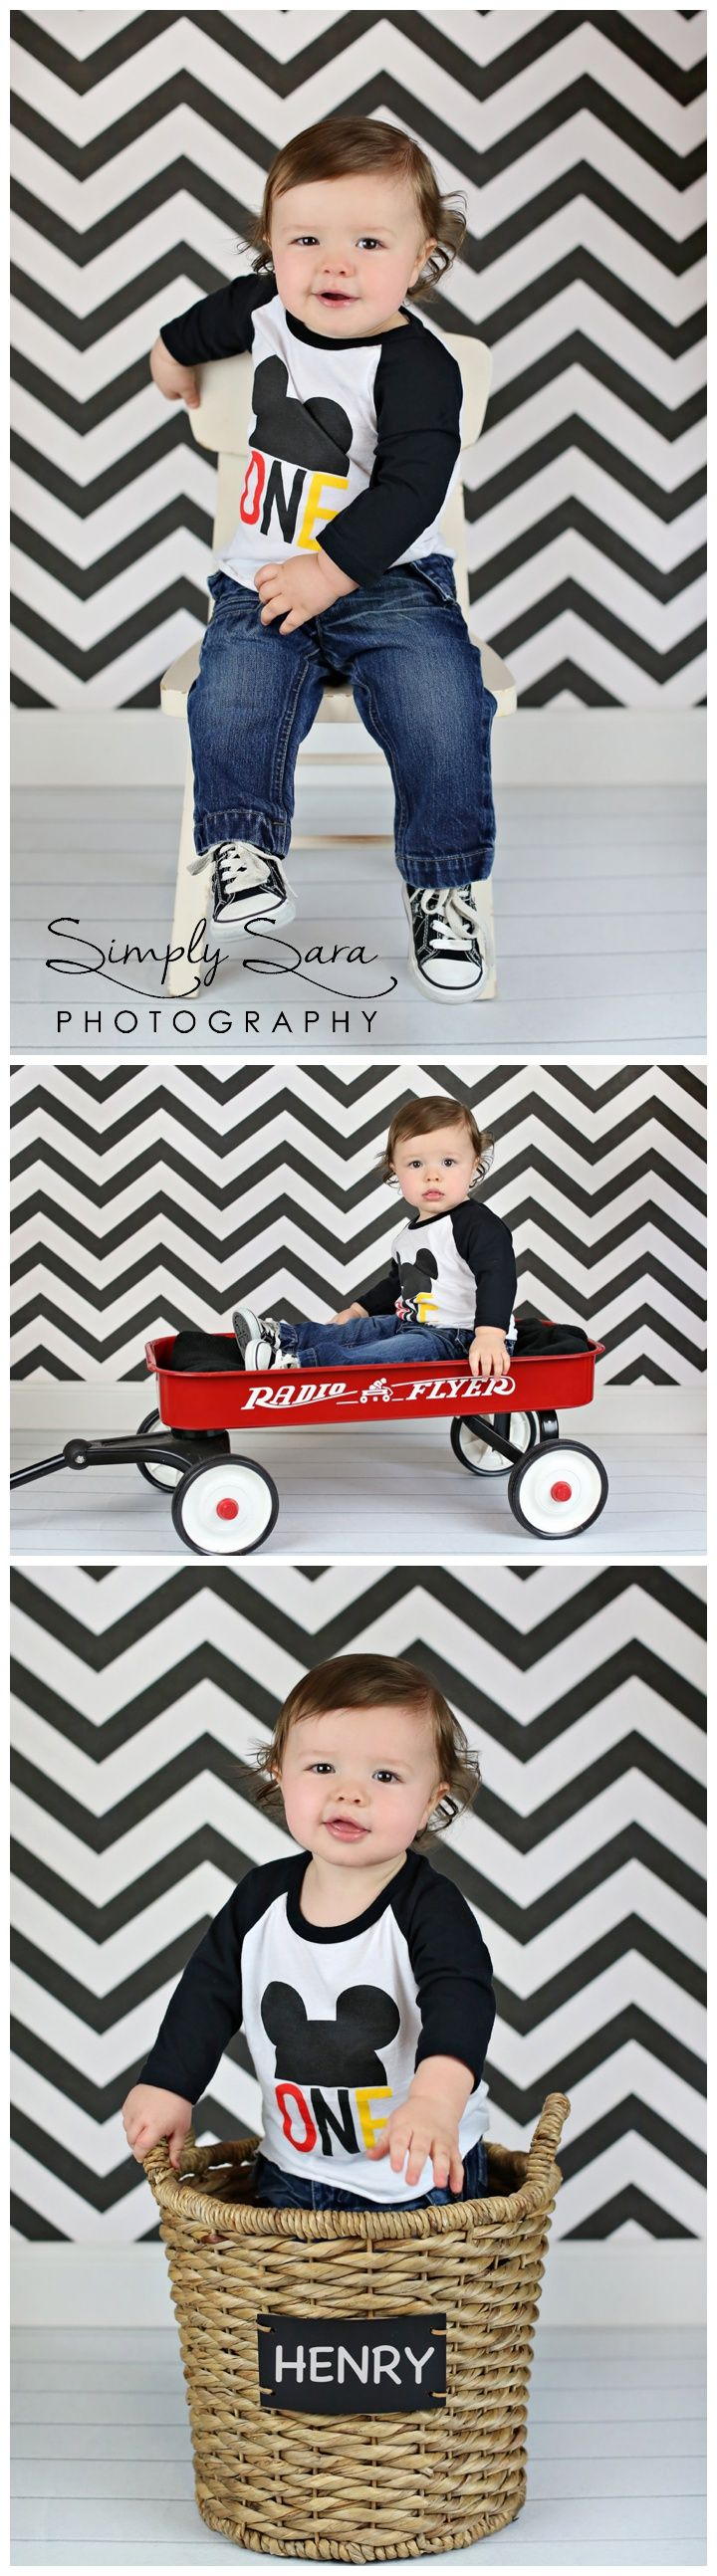 1 Year Old Boy Photo Shoot Ideas & Poses - Indoor Session - Mickey Mouse T-shirt - Red Wagon - Billings, MT Child & Portrait Photographer